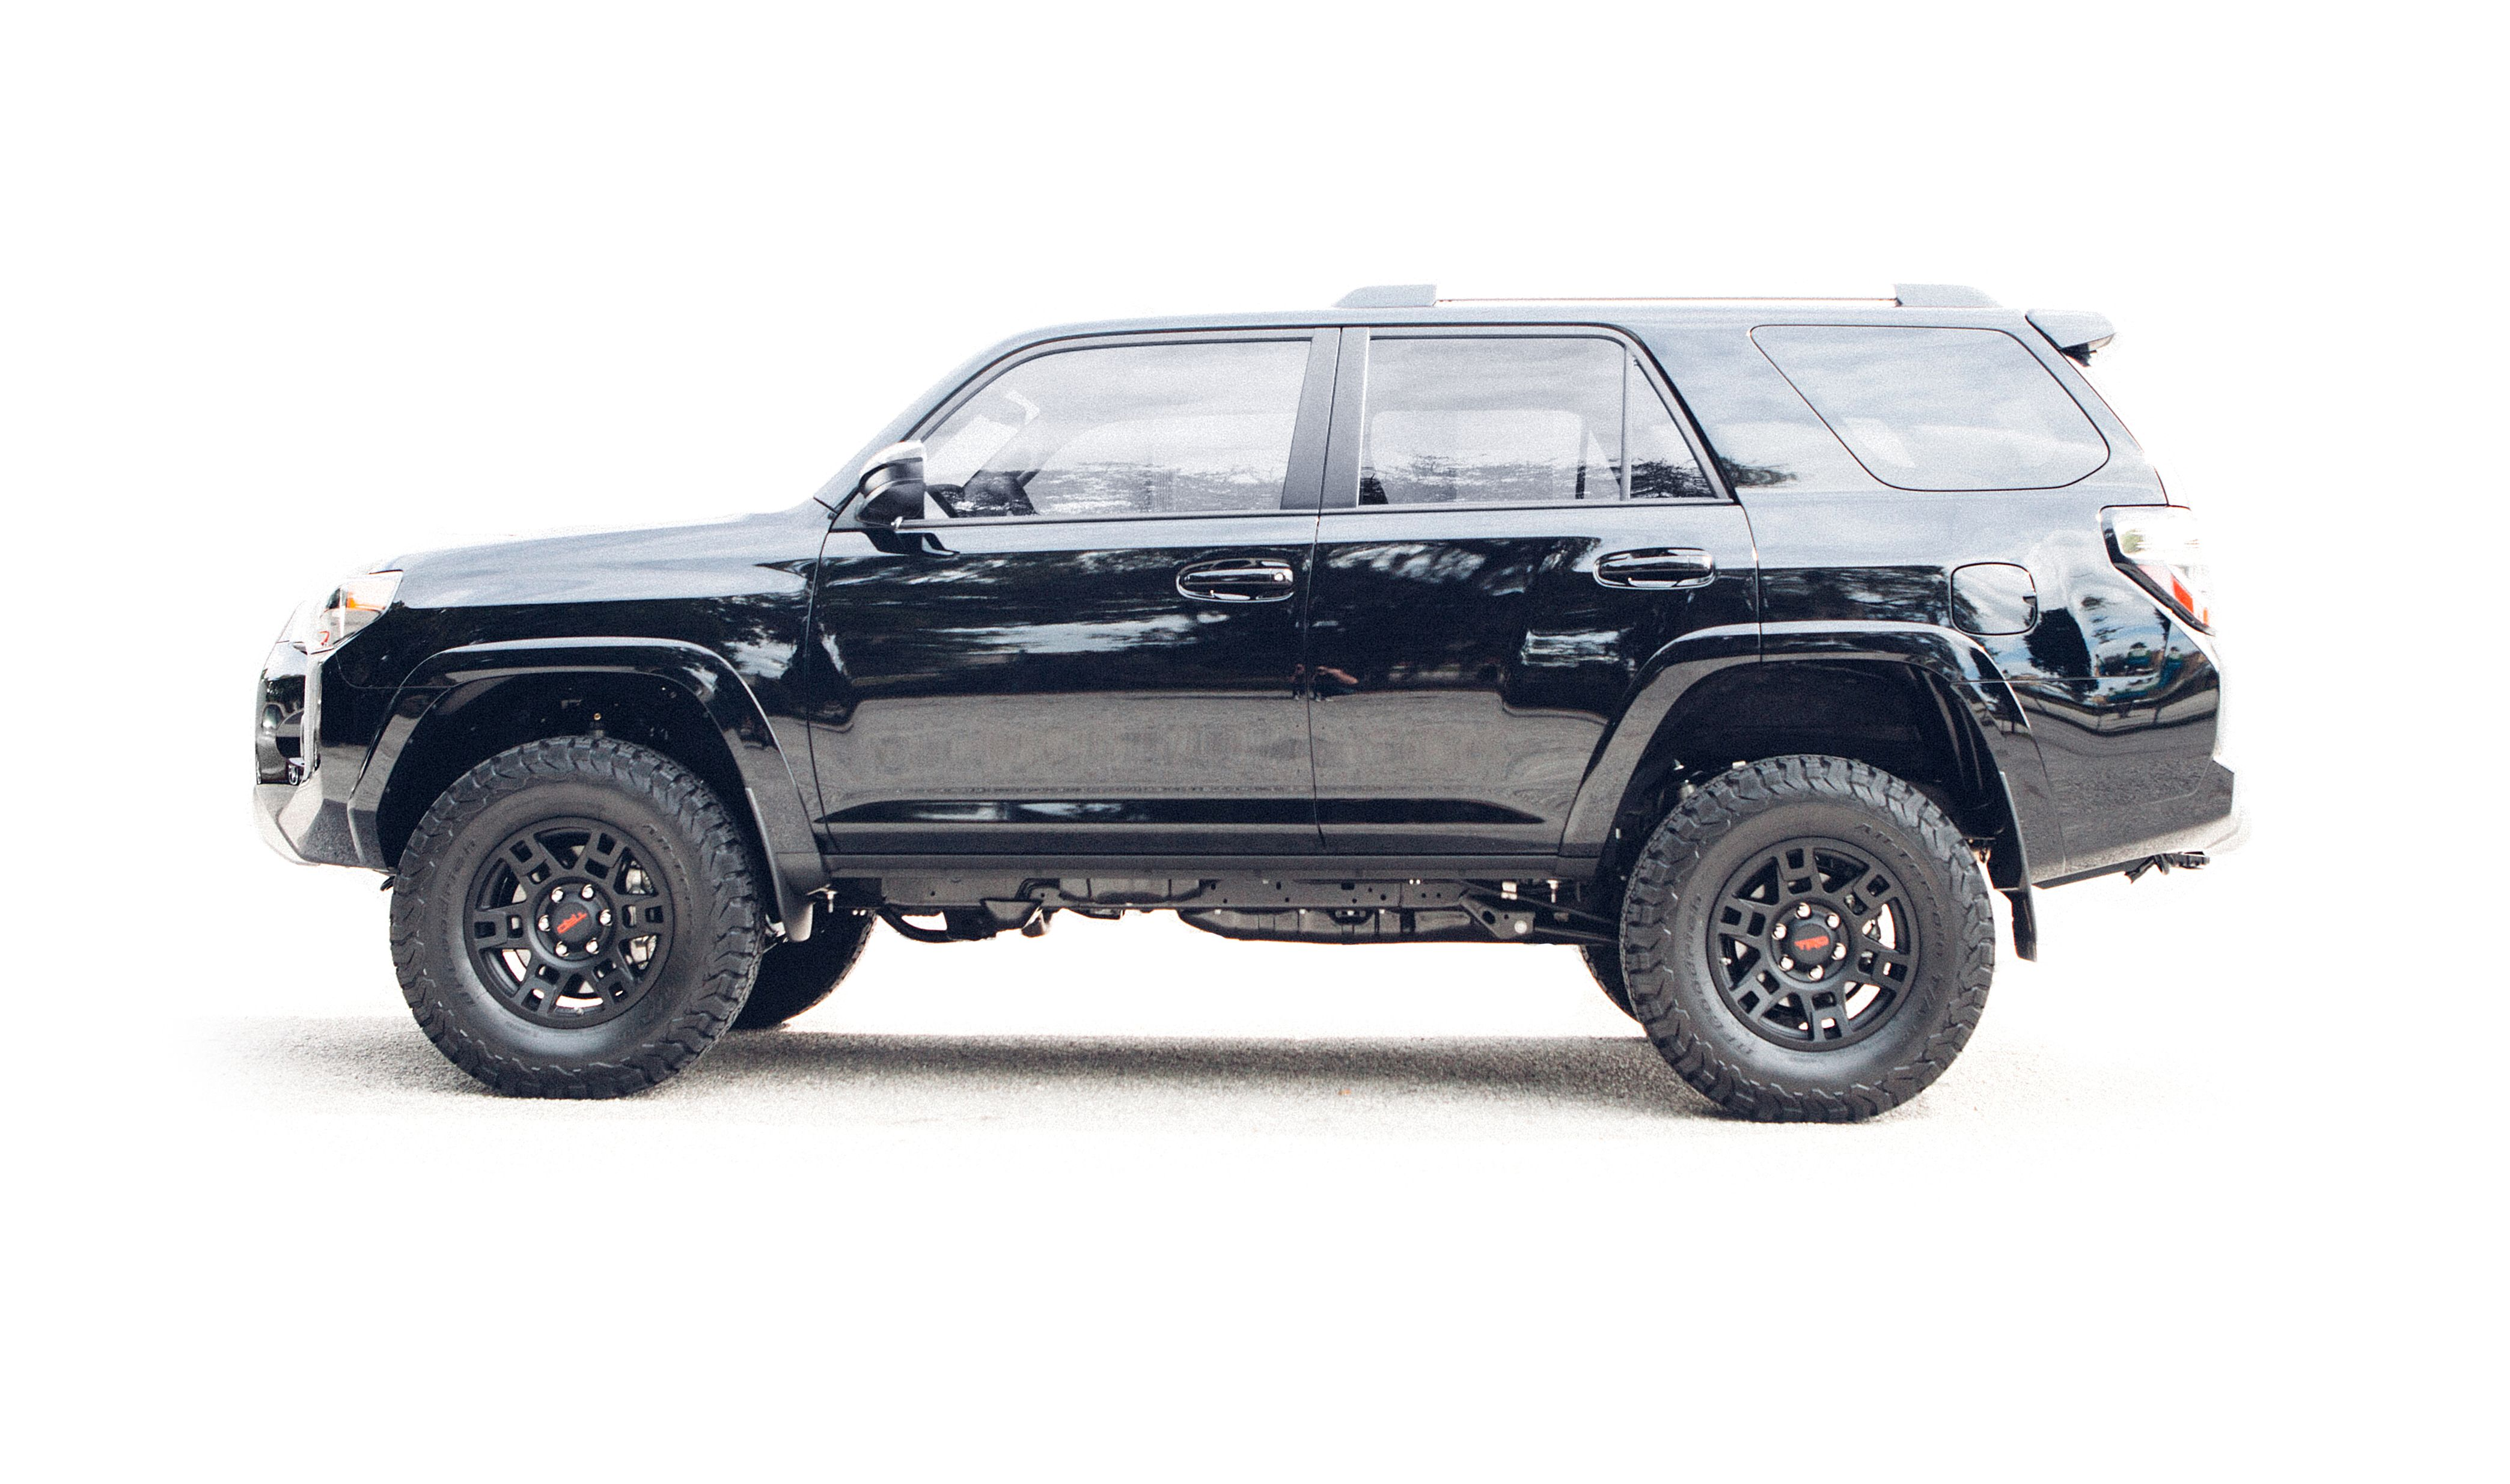 Overland Empire 2016 4Runner Trail Edition with KDSS 3